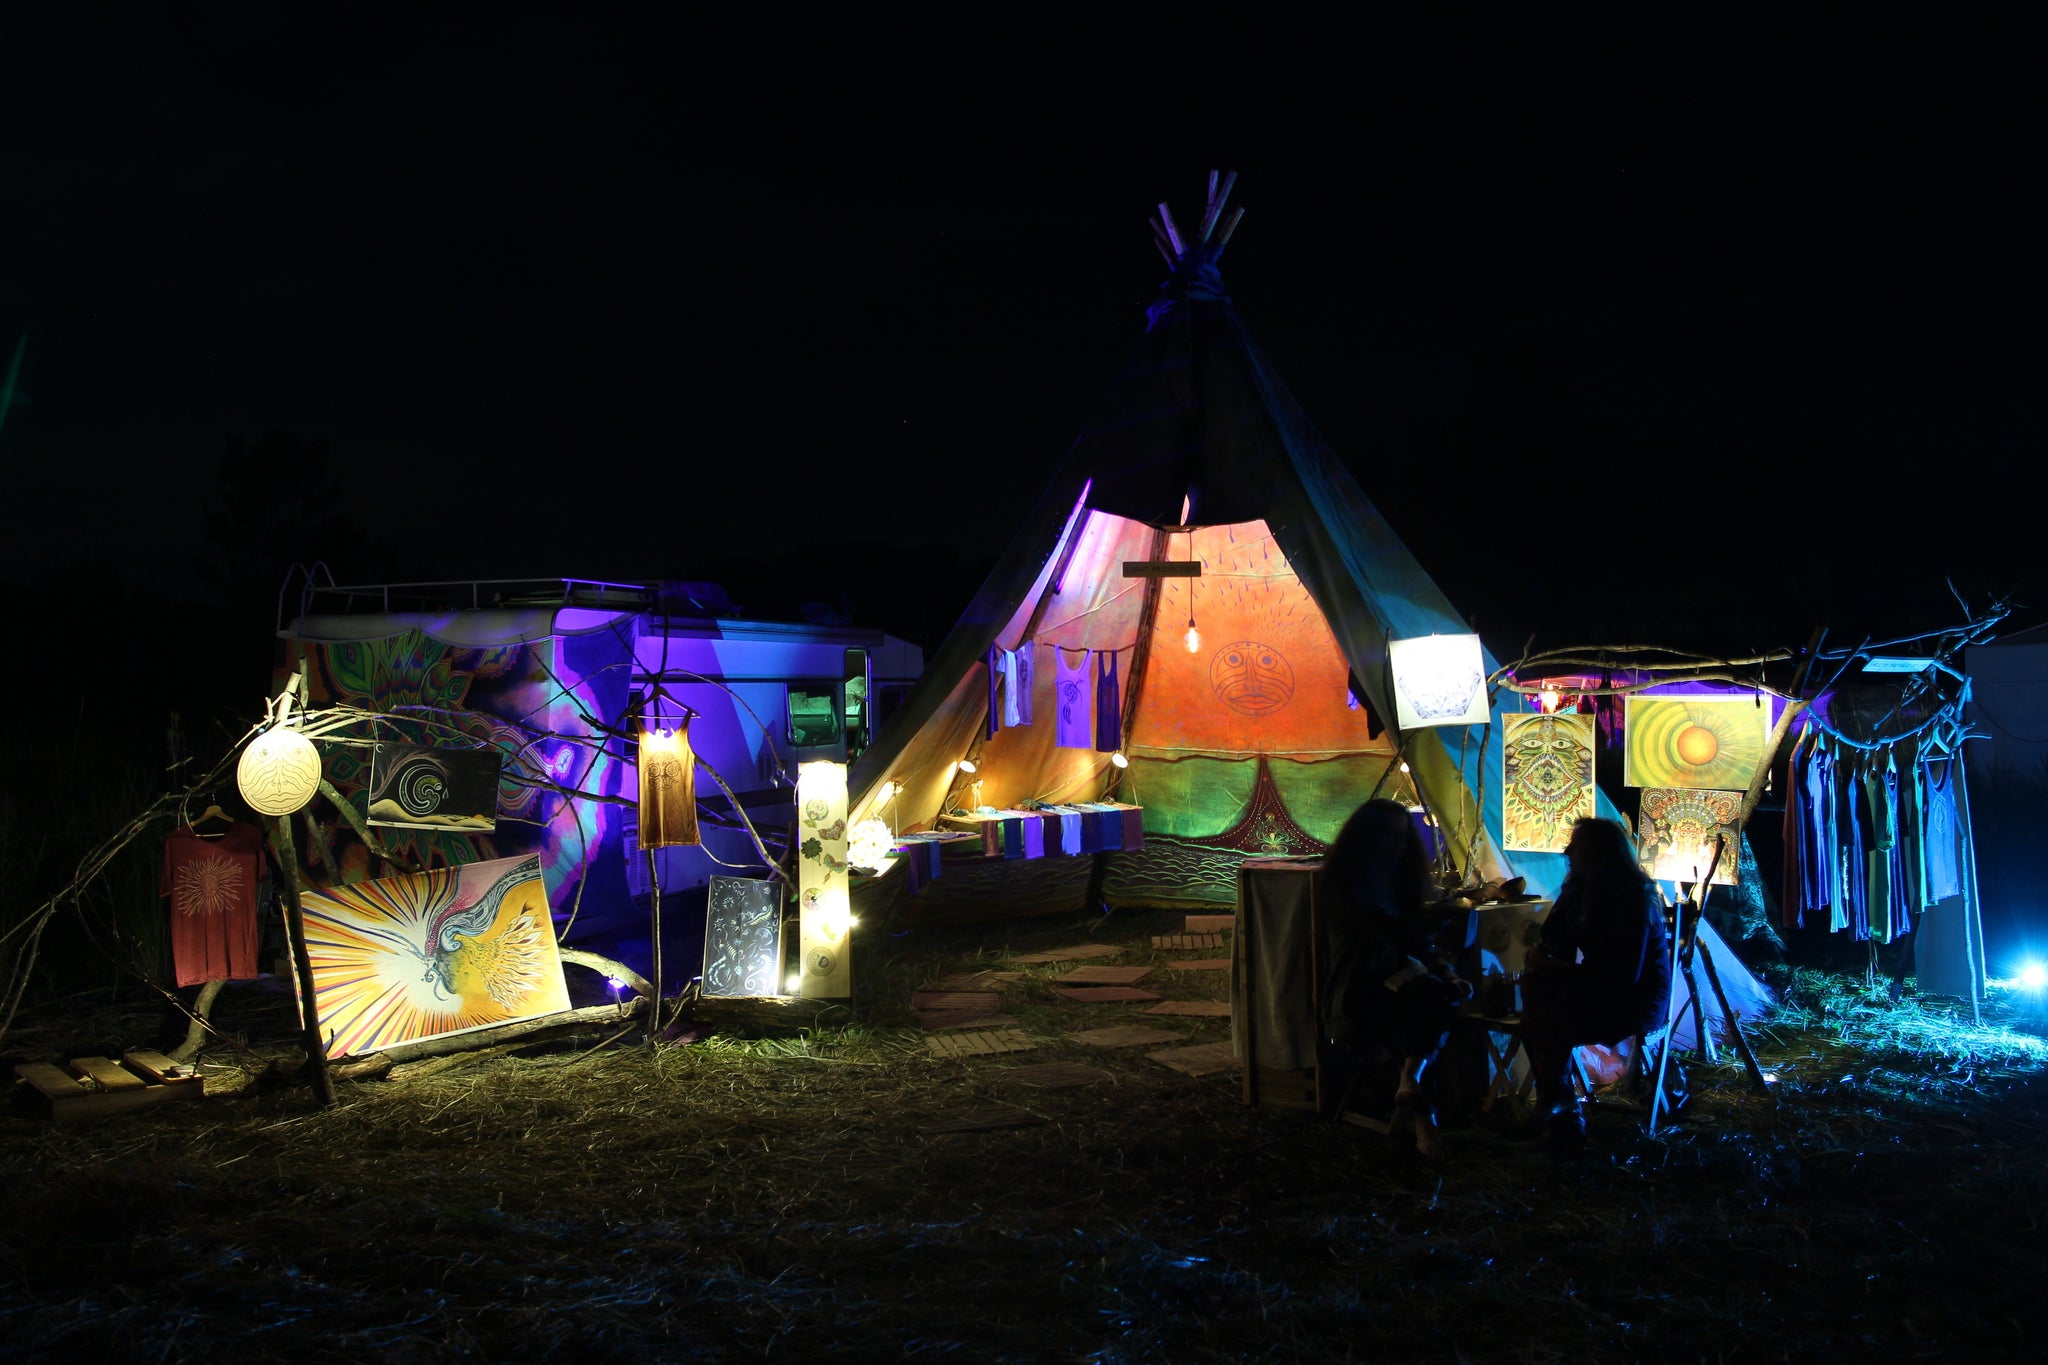 Tipi Shop in the Night